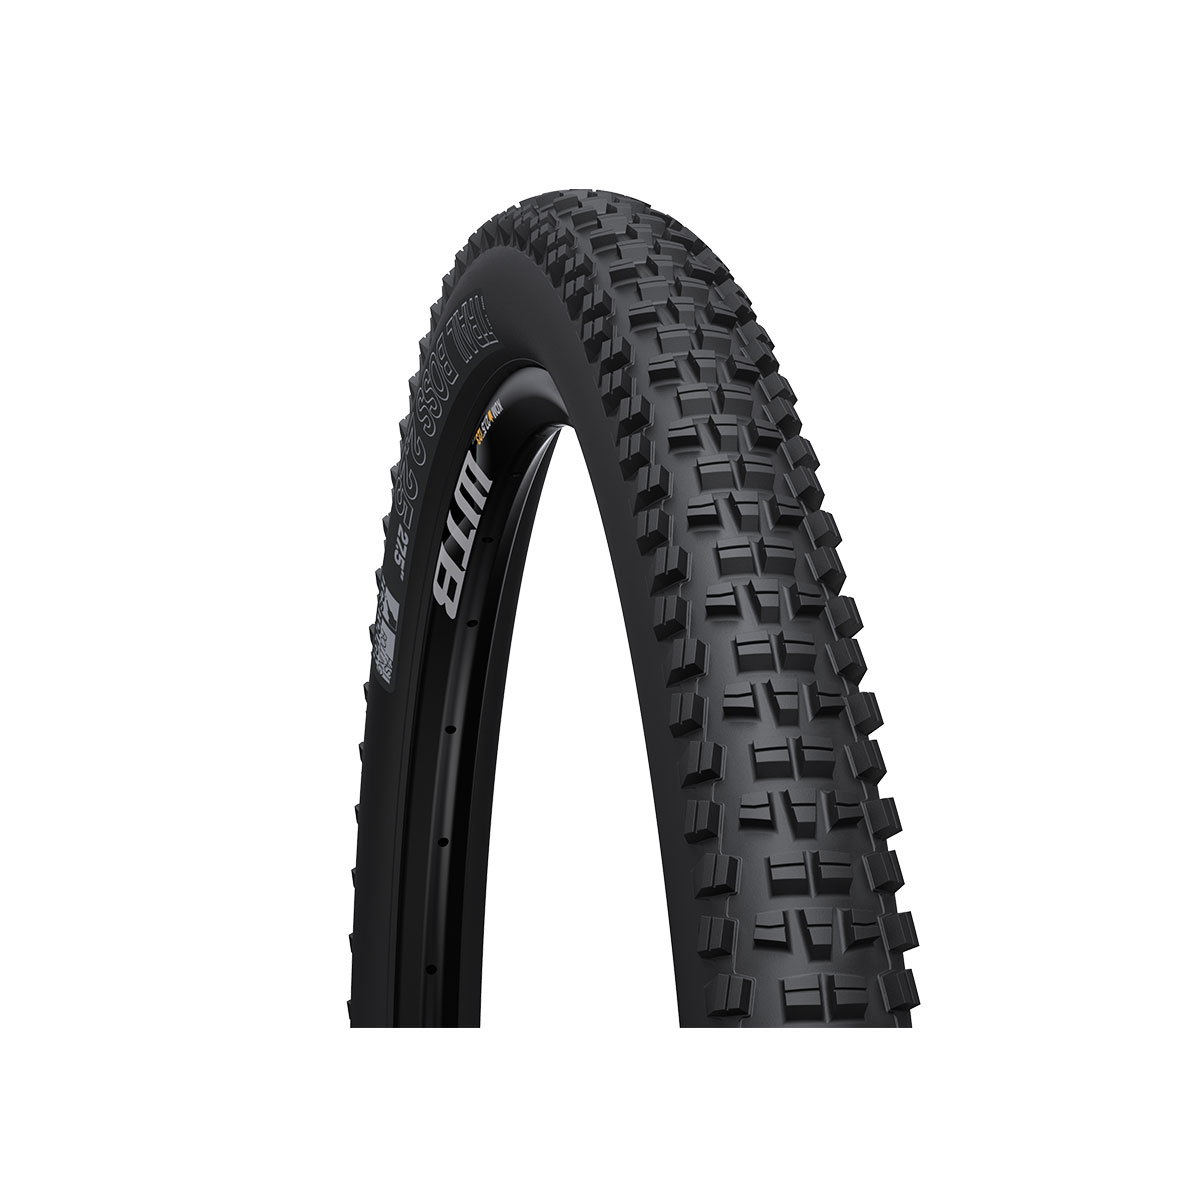 WTB Trail Boss Tough/Fast Rolling Tire 2.25 x 27.5""